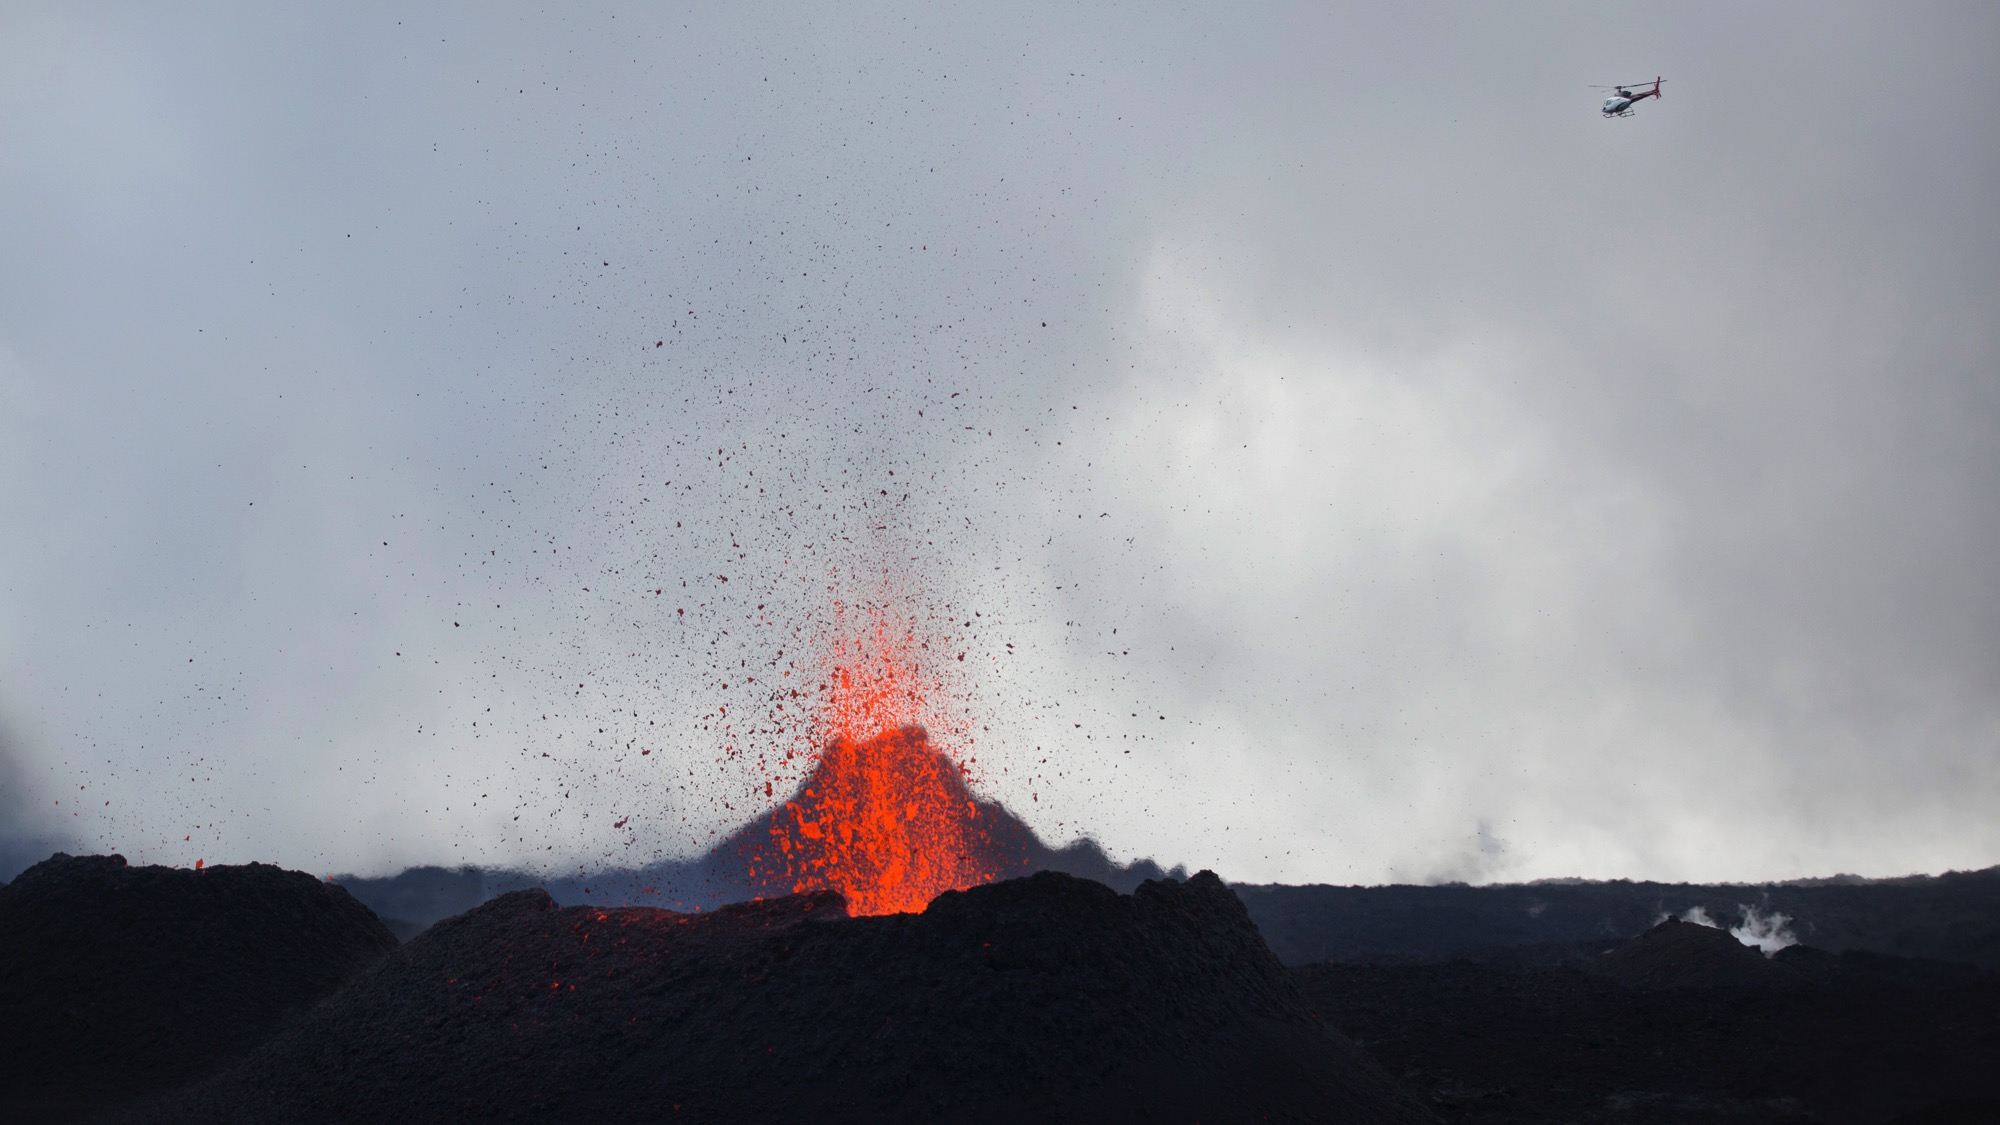 """A helicopter flies over as lava erupts from the Piton de la Fournaise """"Peak of the Furnace"""" volcano, on the southeastern corner of the Indian Ocean island of Reunion Saturday, Aug. 1, 2015. Spewing red-hot lava, one of the most active volcanoes in the world is currently erupting on this Indian Ocean island, where the world's attention has been focused since a wing fragment believed to be from the missing Malaysian jet was discovered washed up on a beach. (AP Photo/Ben Curtis)"""